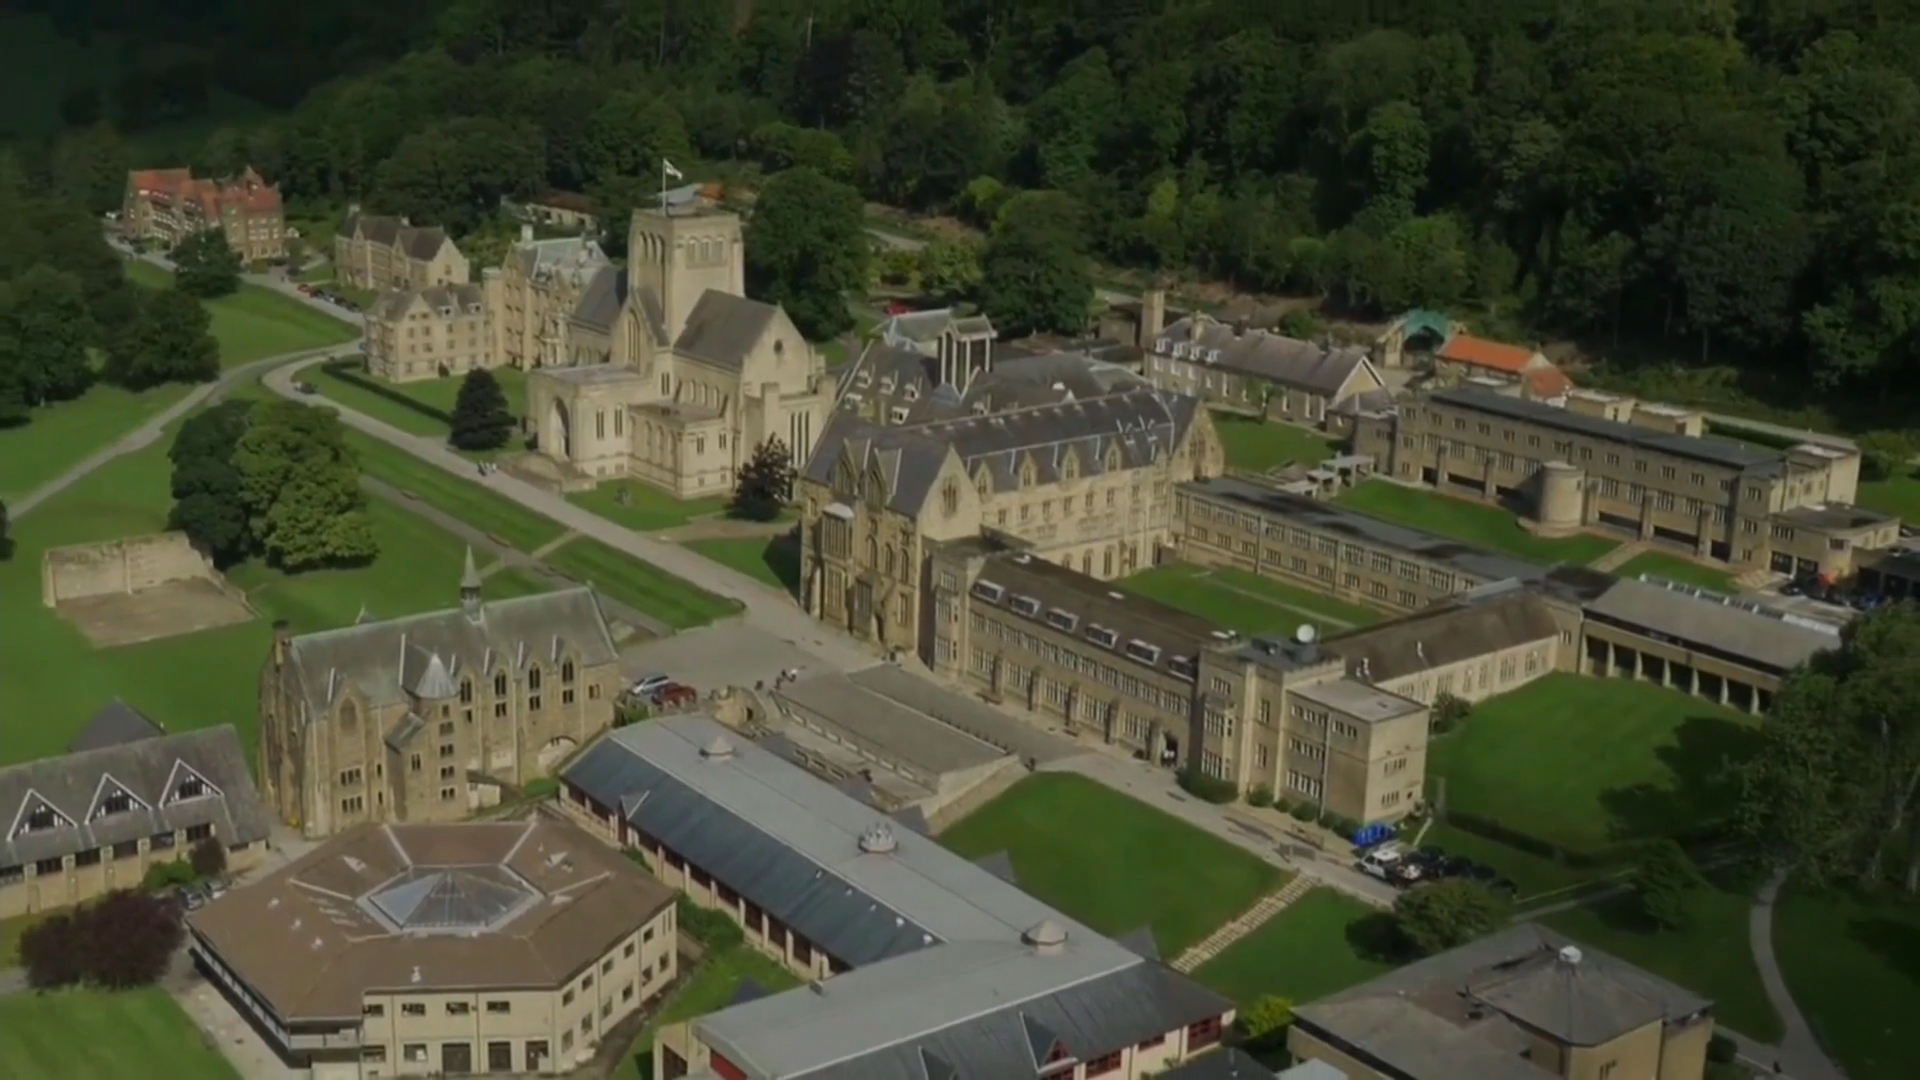 Ampleforth College faces questions over pupil safeguarding - channel 4